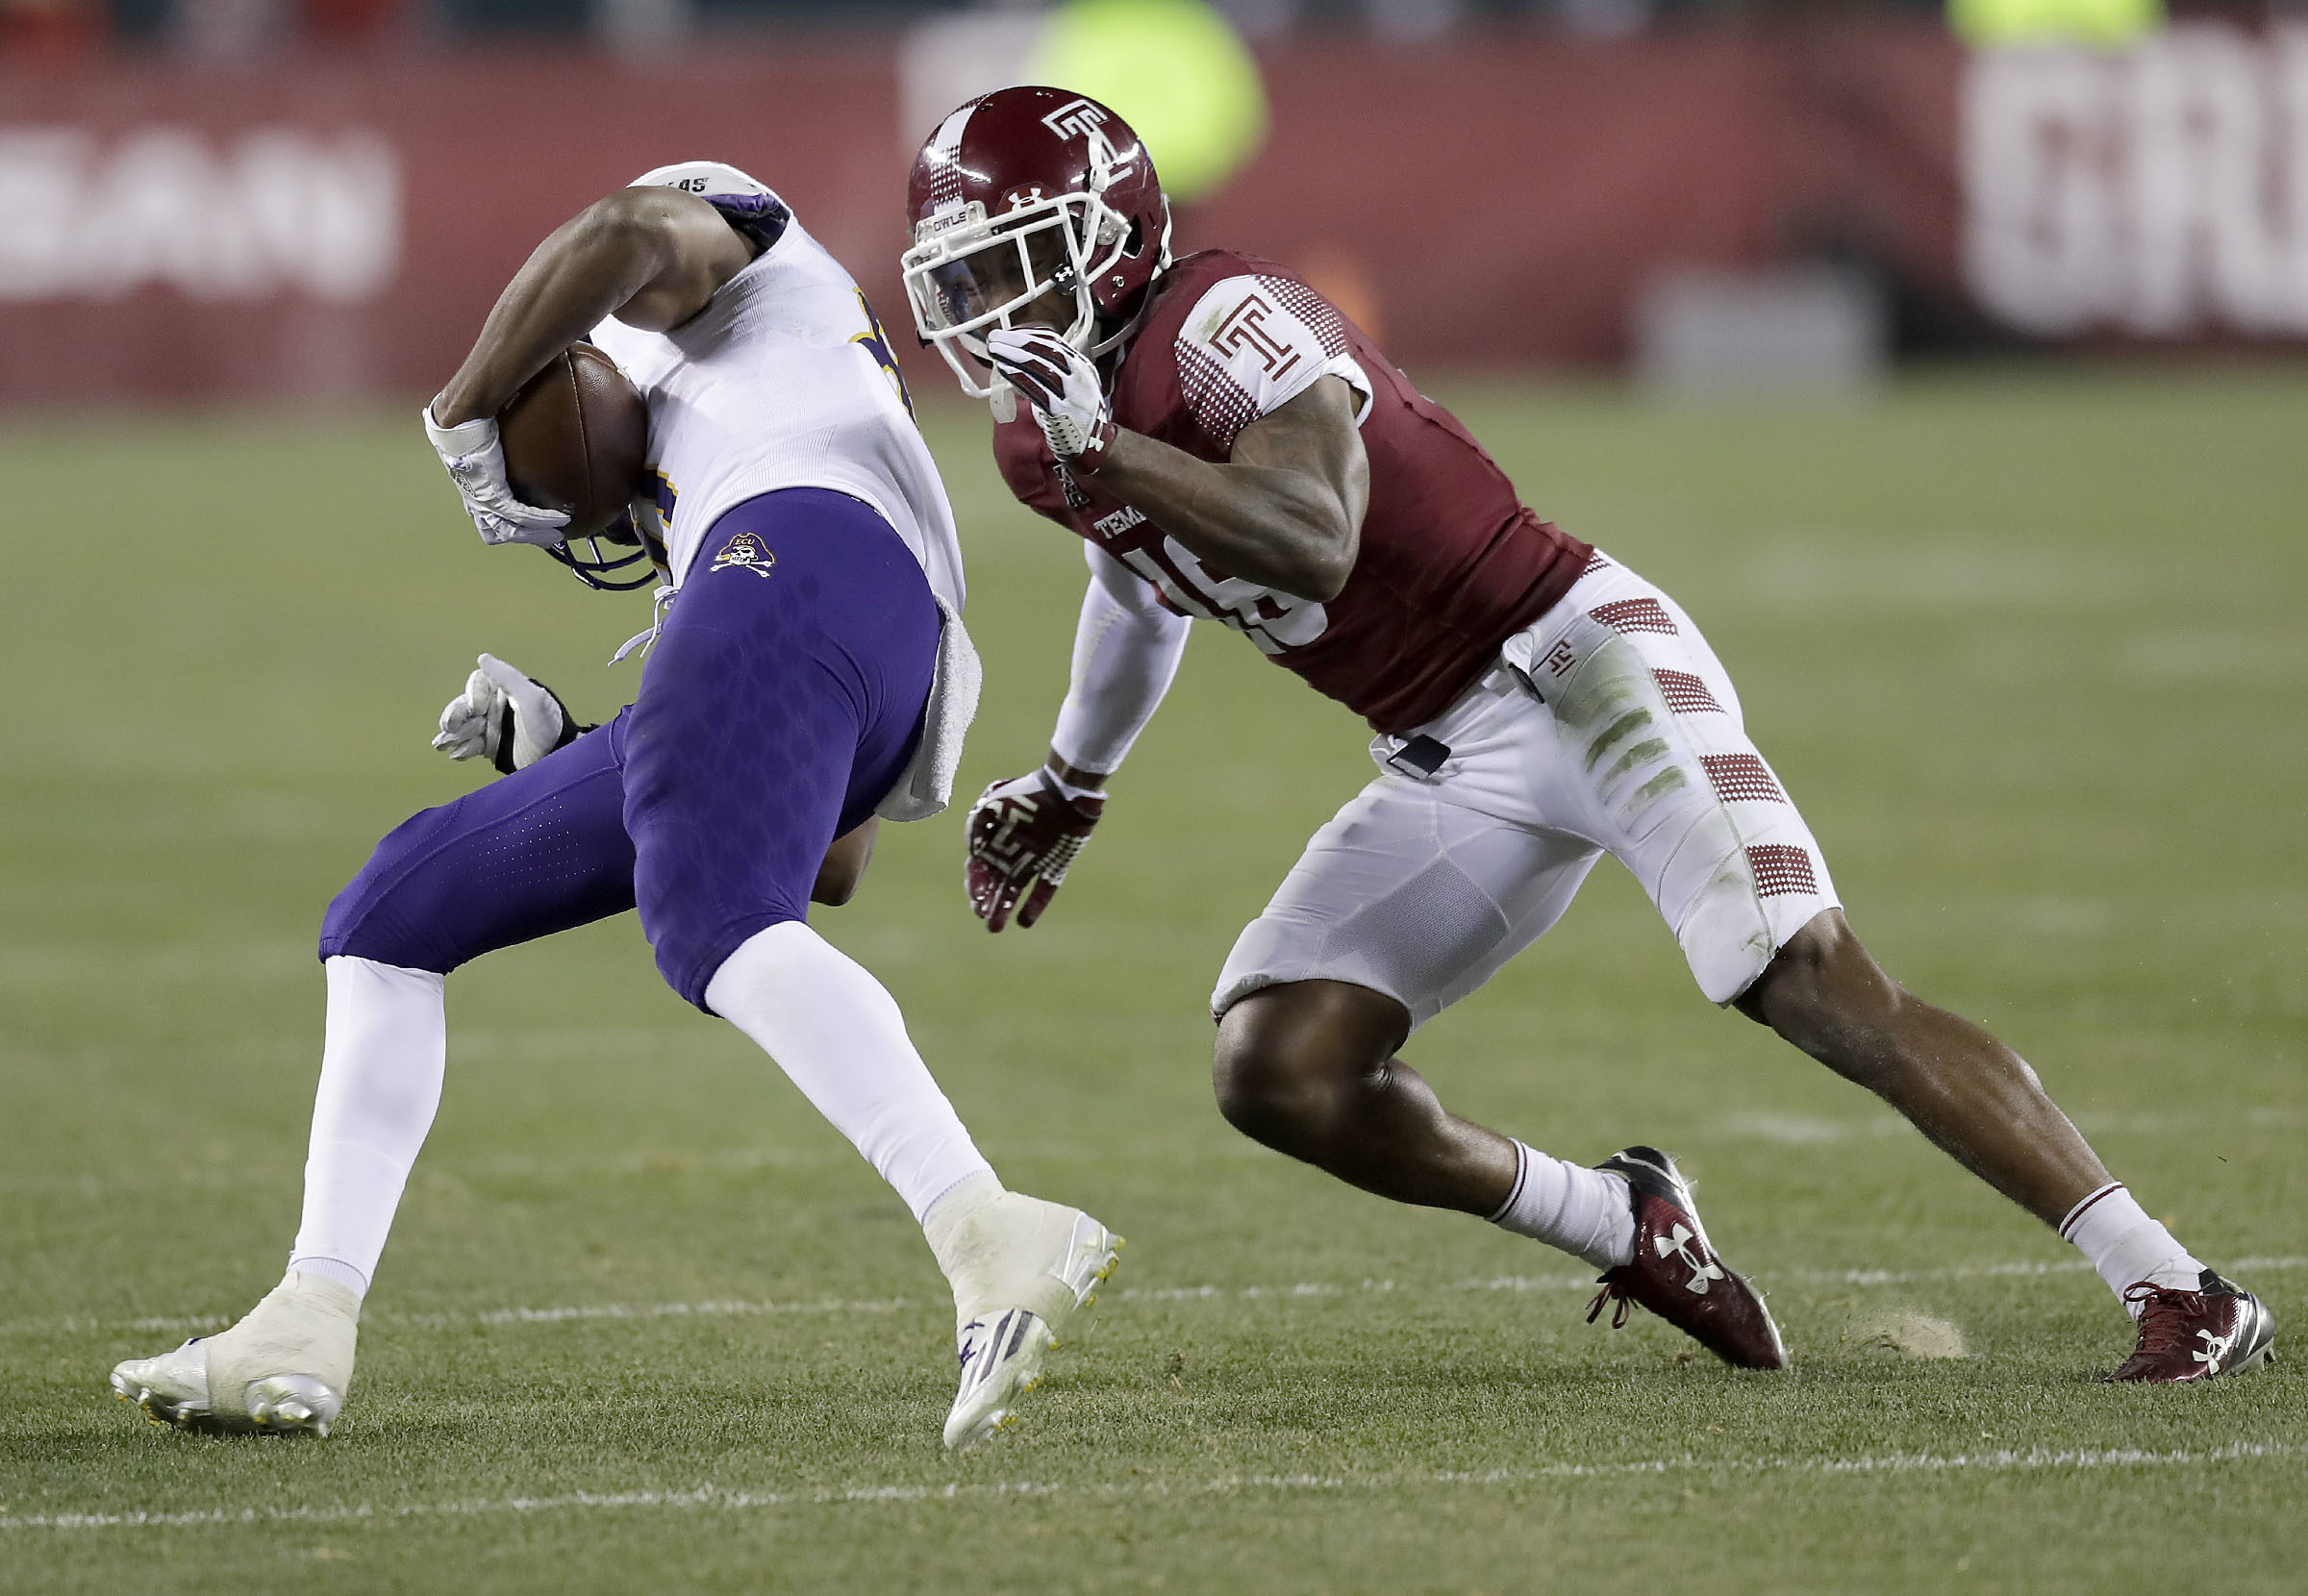 Temple defensive back Artrel Foster goes after East Carolina wide receiver Jimmy Williams on Saturday, November 26, 2016 in Philadelphia. YONG KIM / Staff Photographer